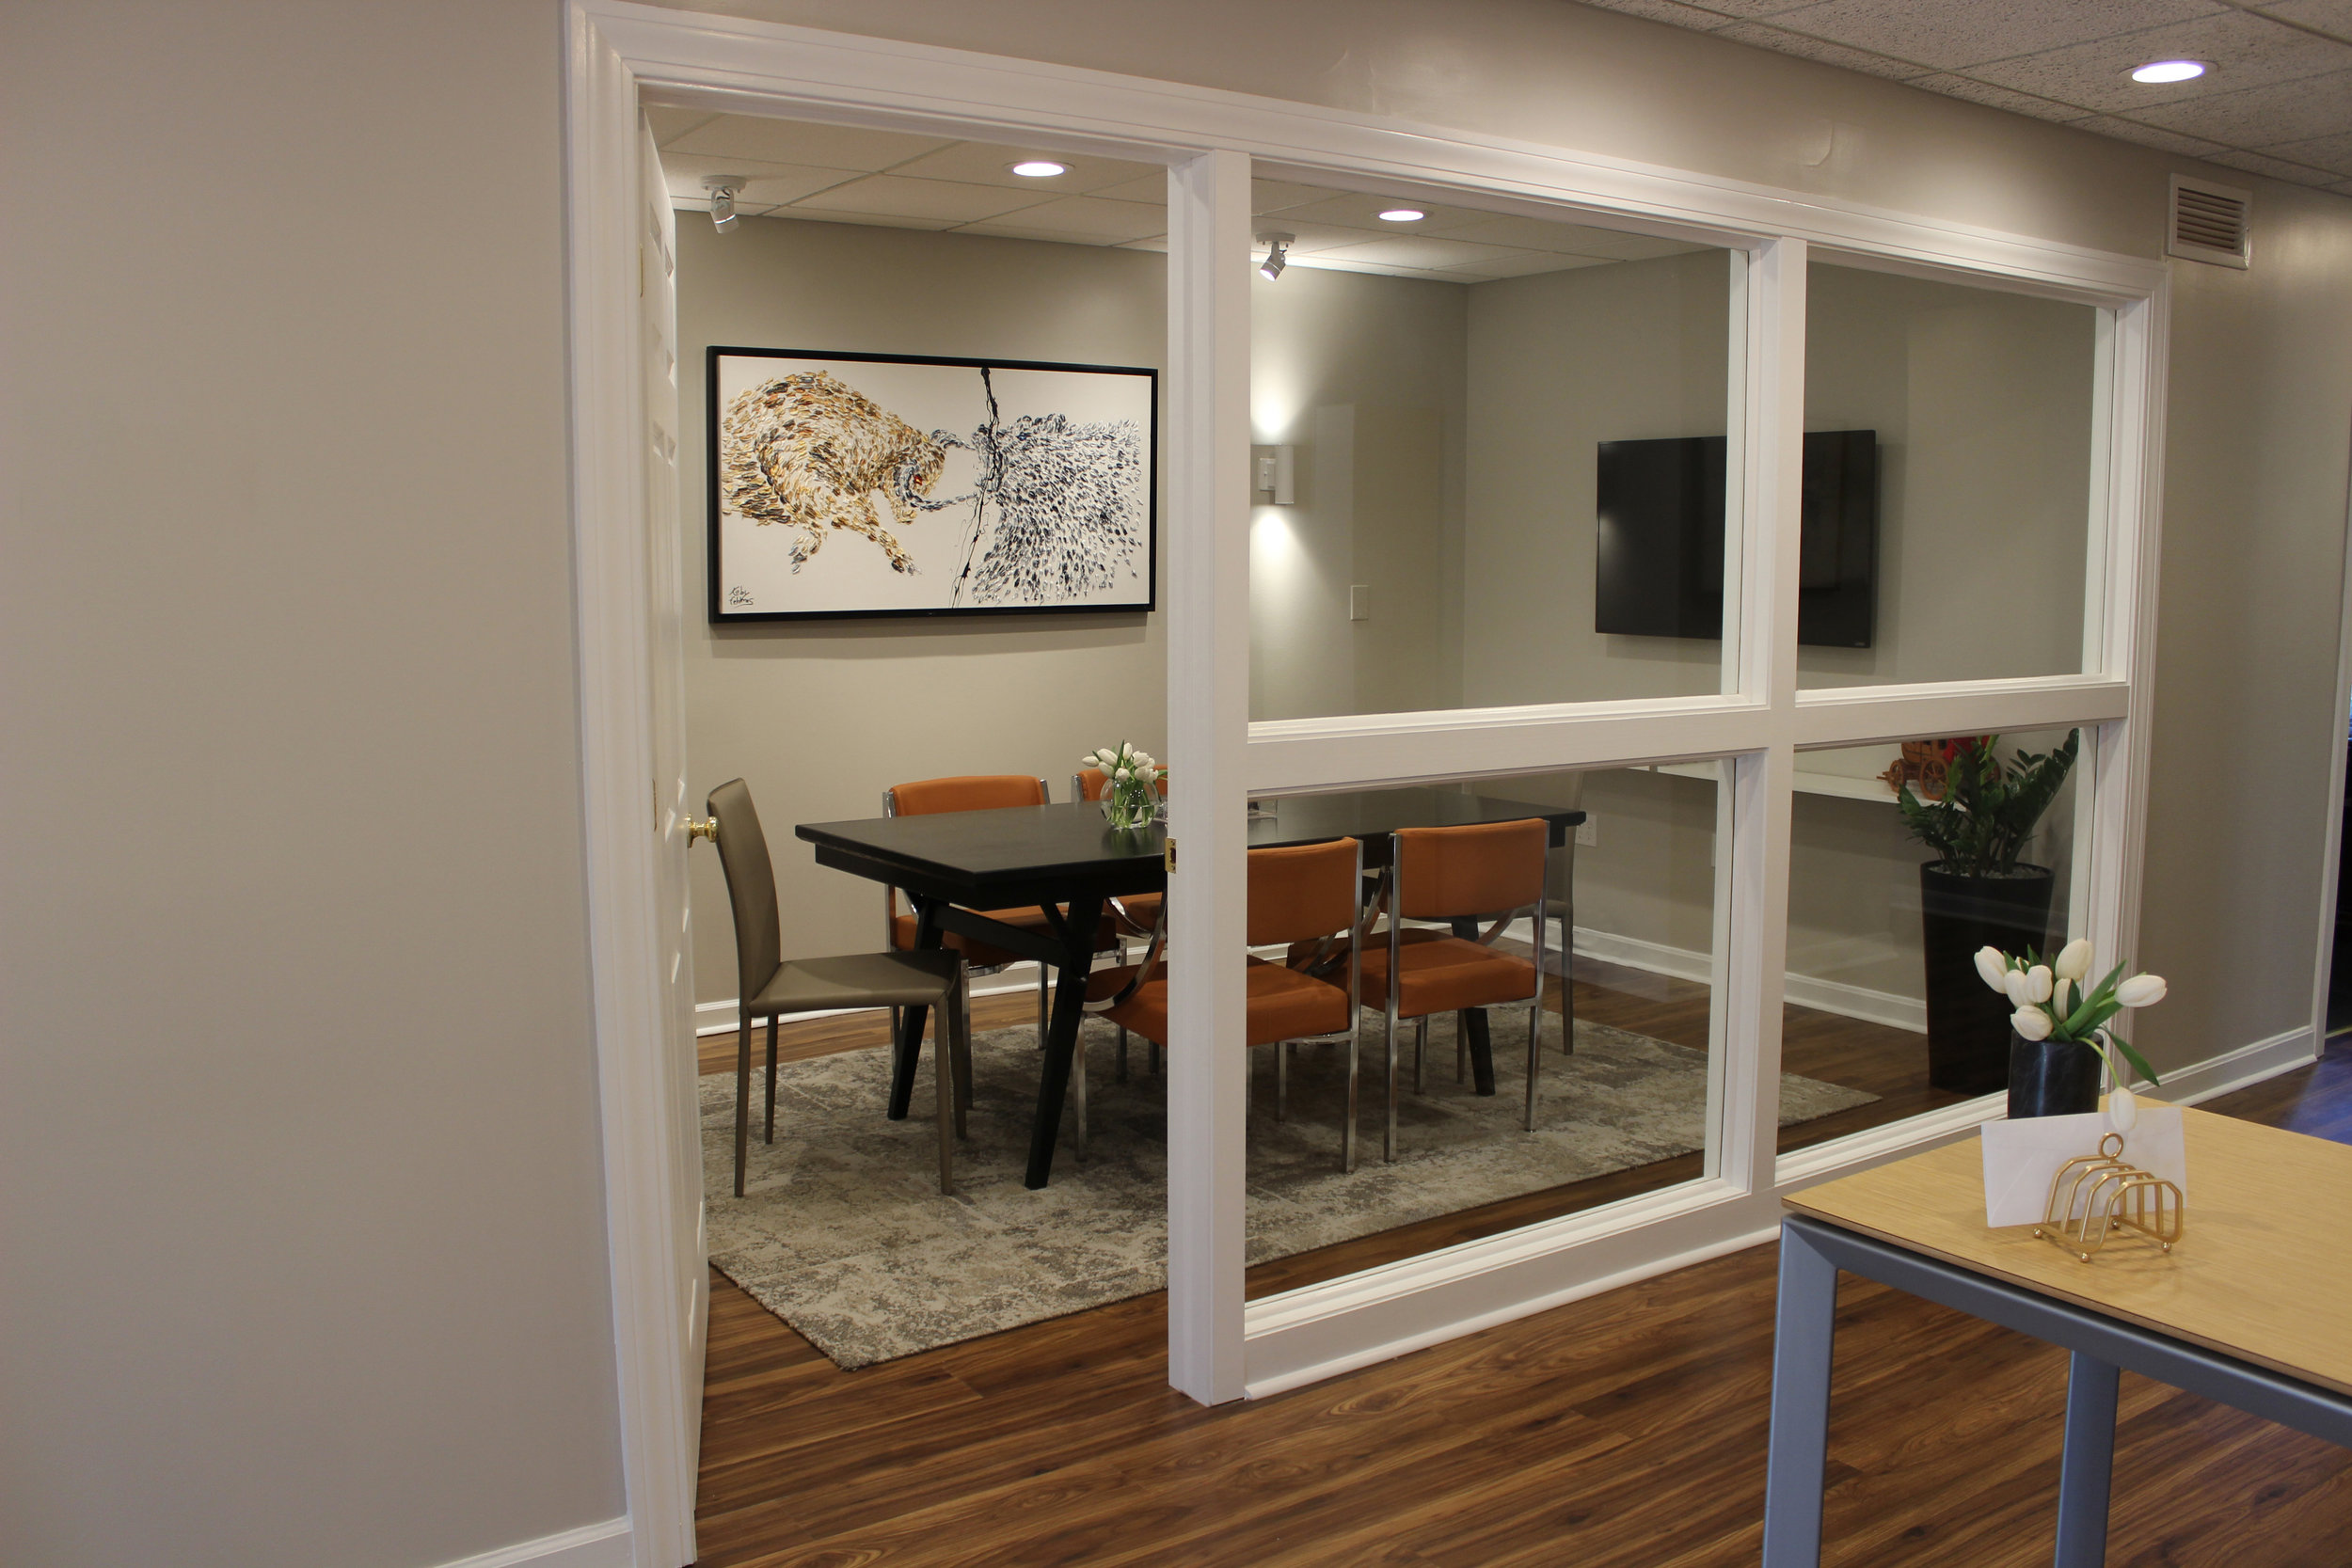 AFTER: A view into the conference room from the reception desk.